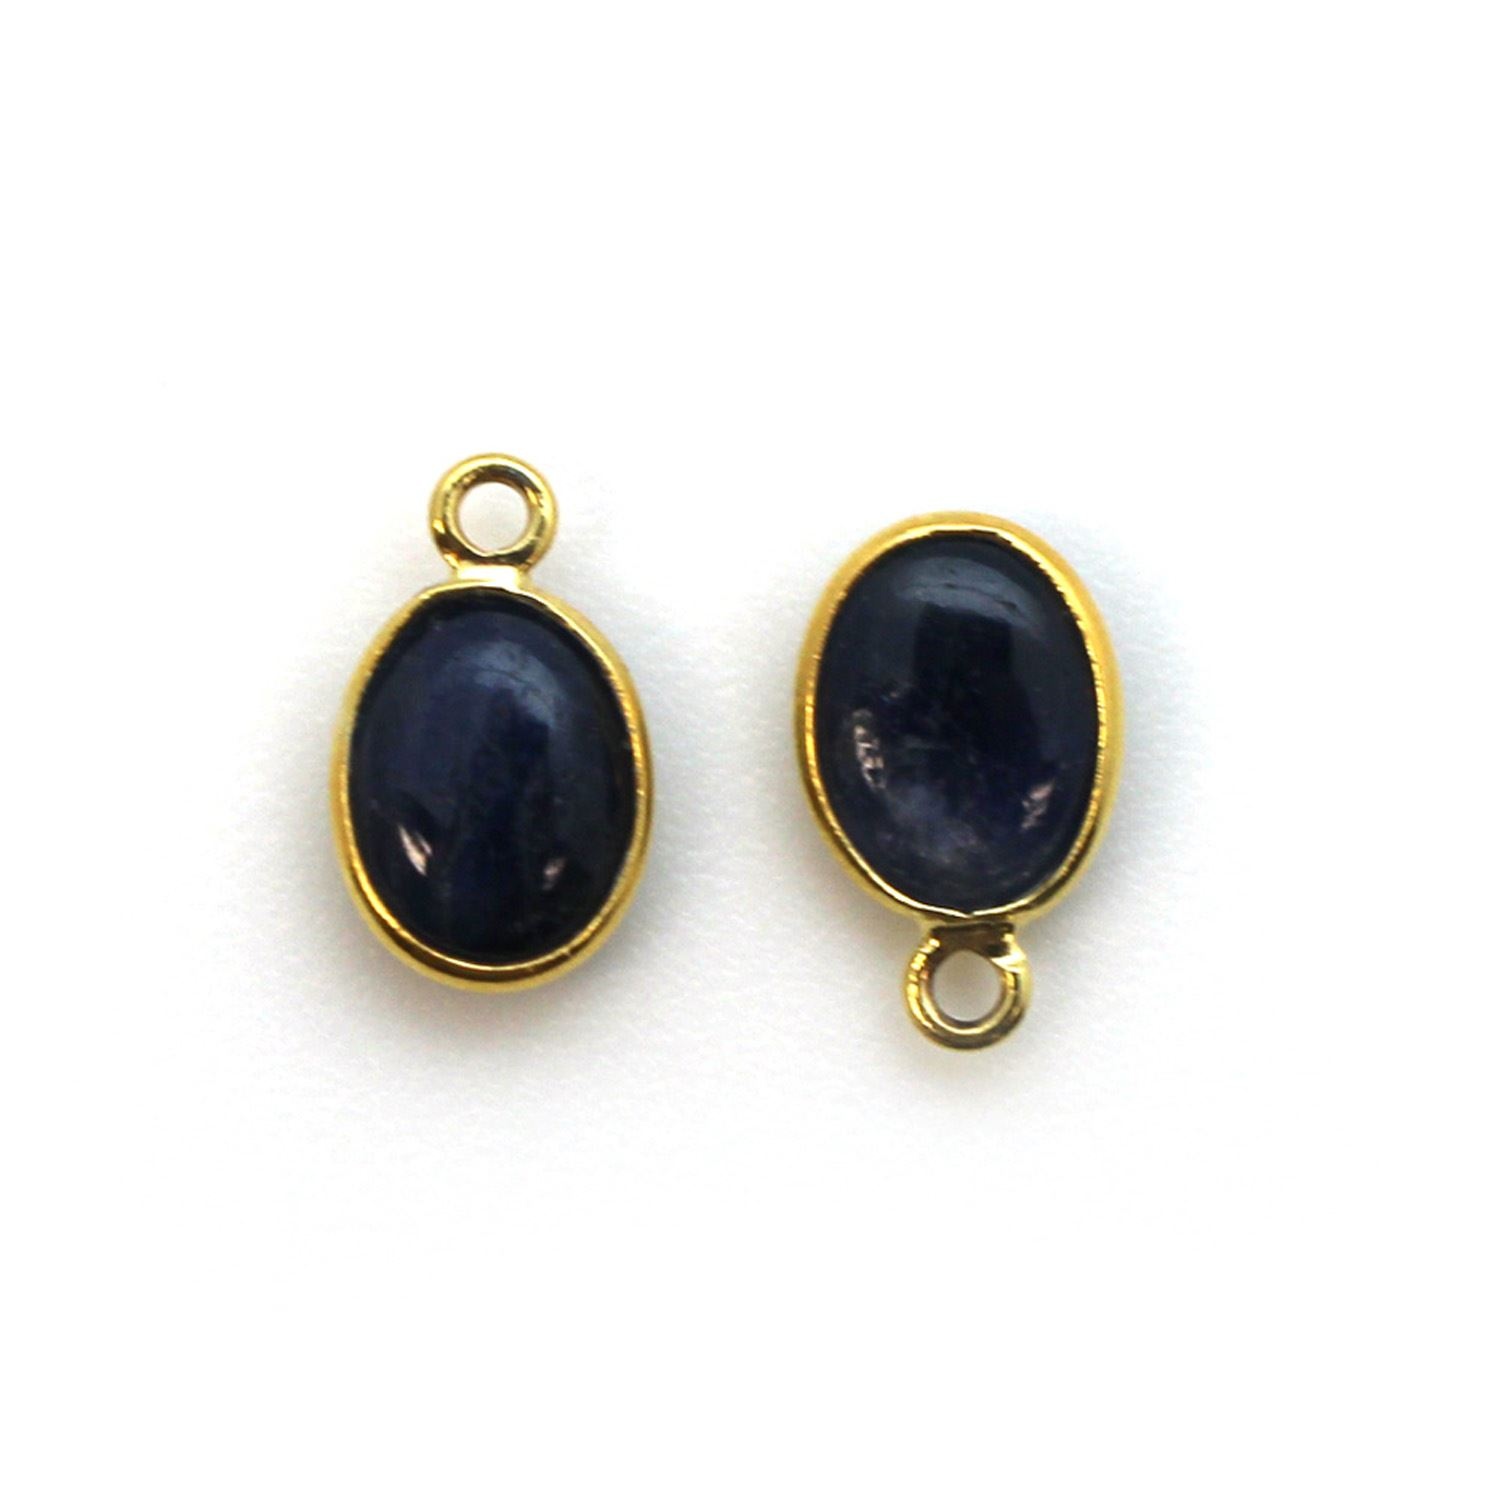 Bezel Charm Pendant - Gold Plated Silver Charm - Natural Blue Sapphire-Tiny Oval Shape